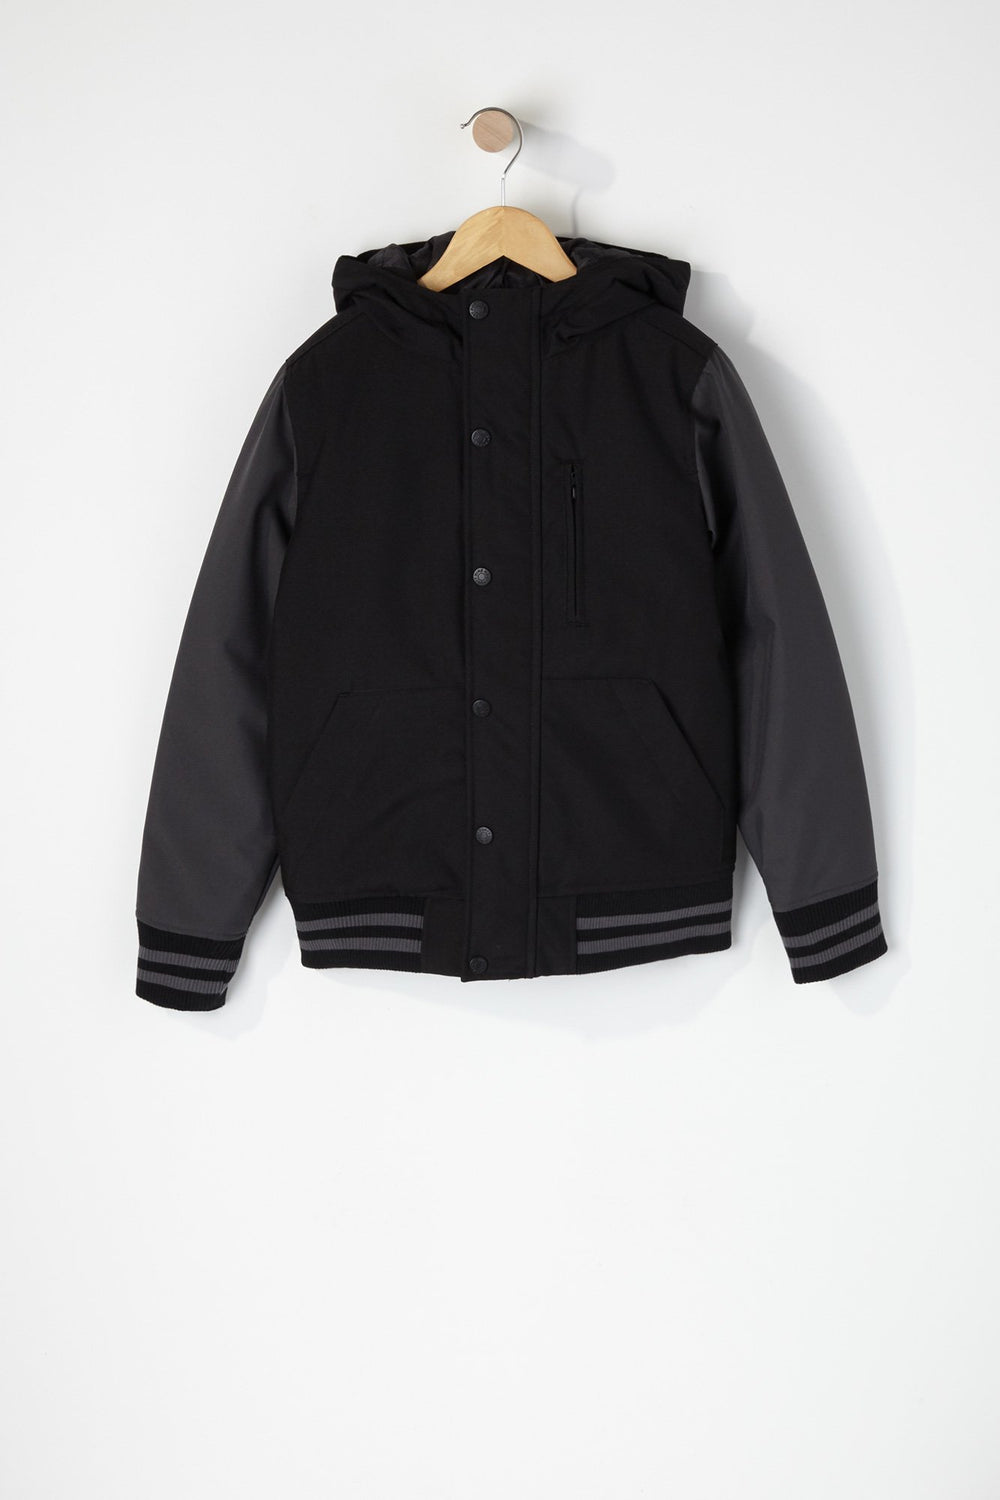 West49 Boys Colour Block Varsity Jacket Black